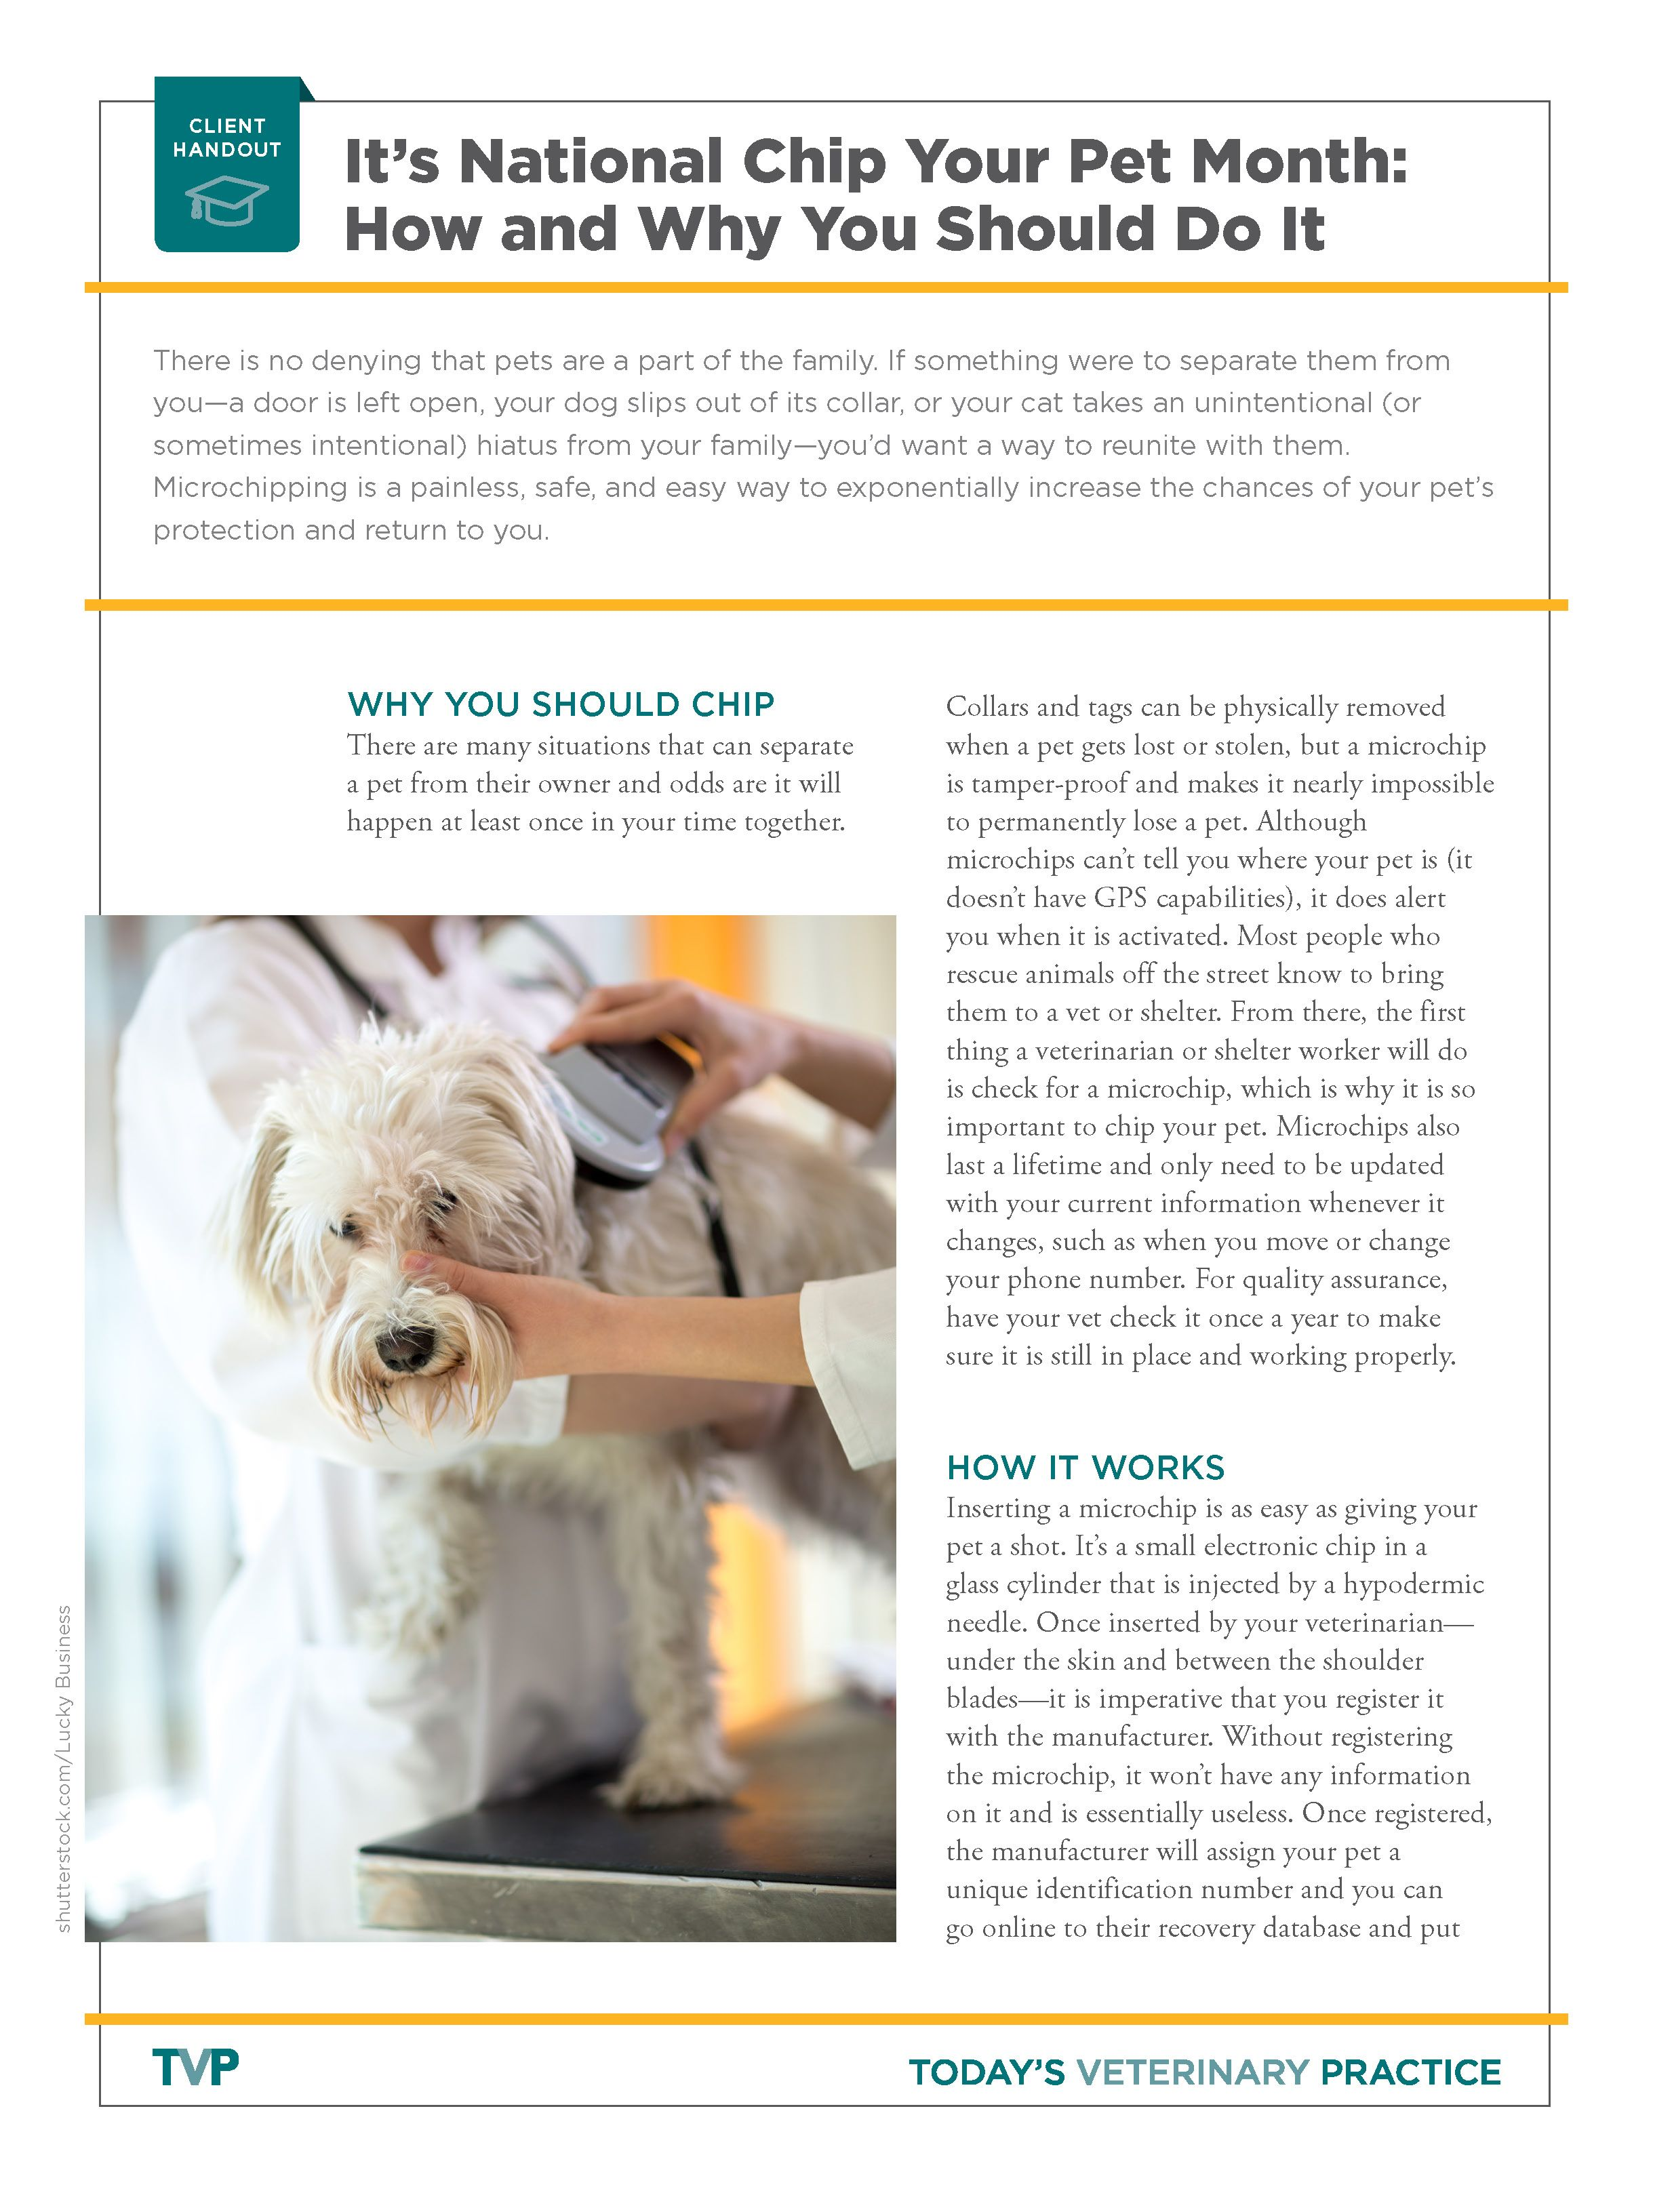 A Veterinary Clinic Handout For Clients About The Importance Of Microchipping Pets Veterinary Clinic Pets Handouts